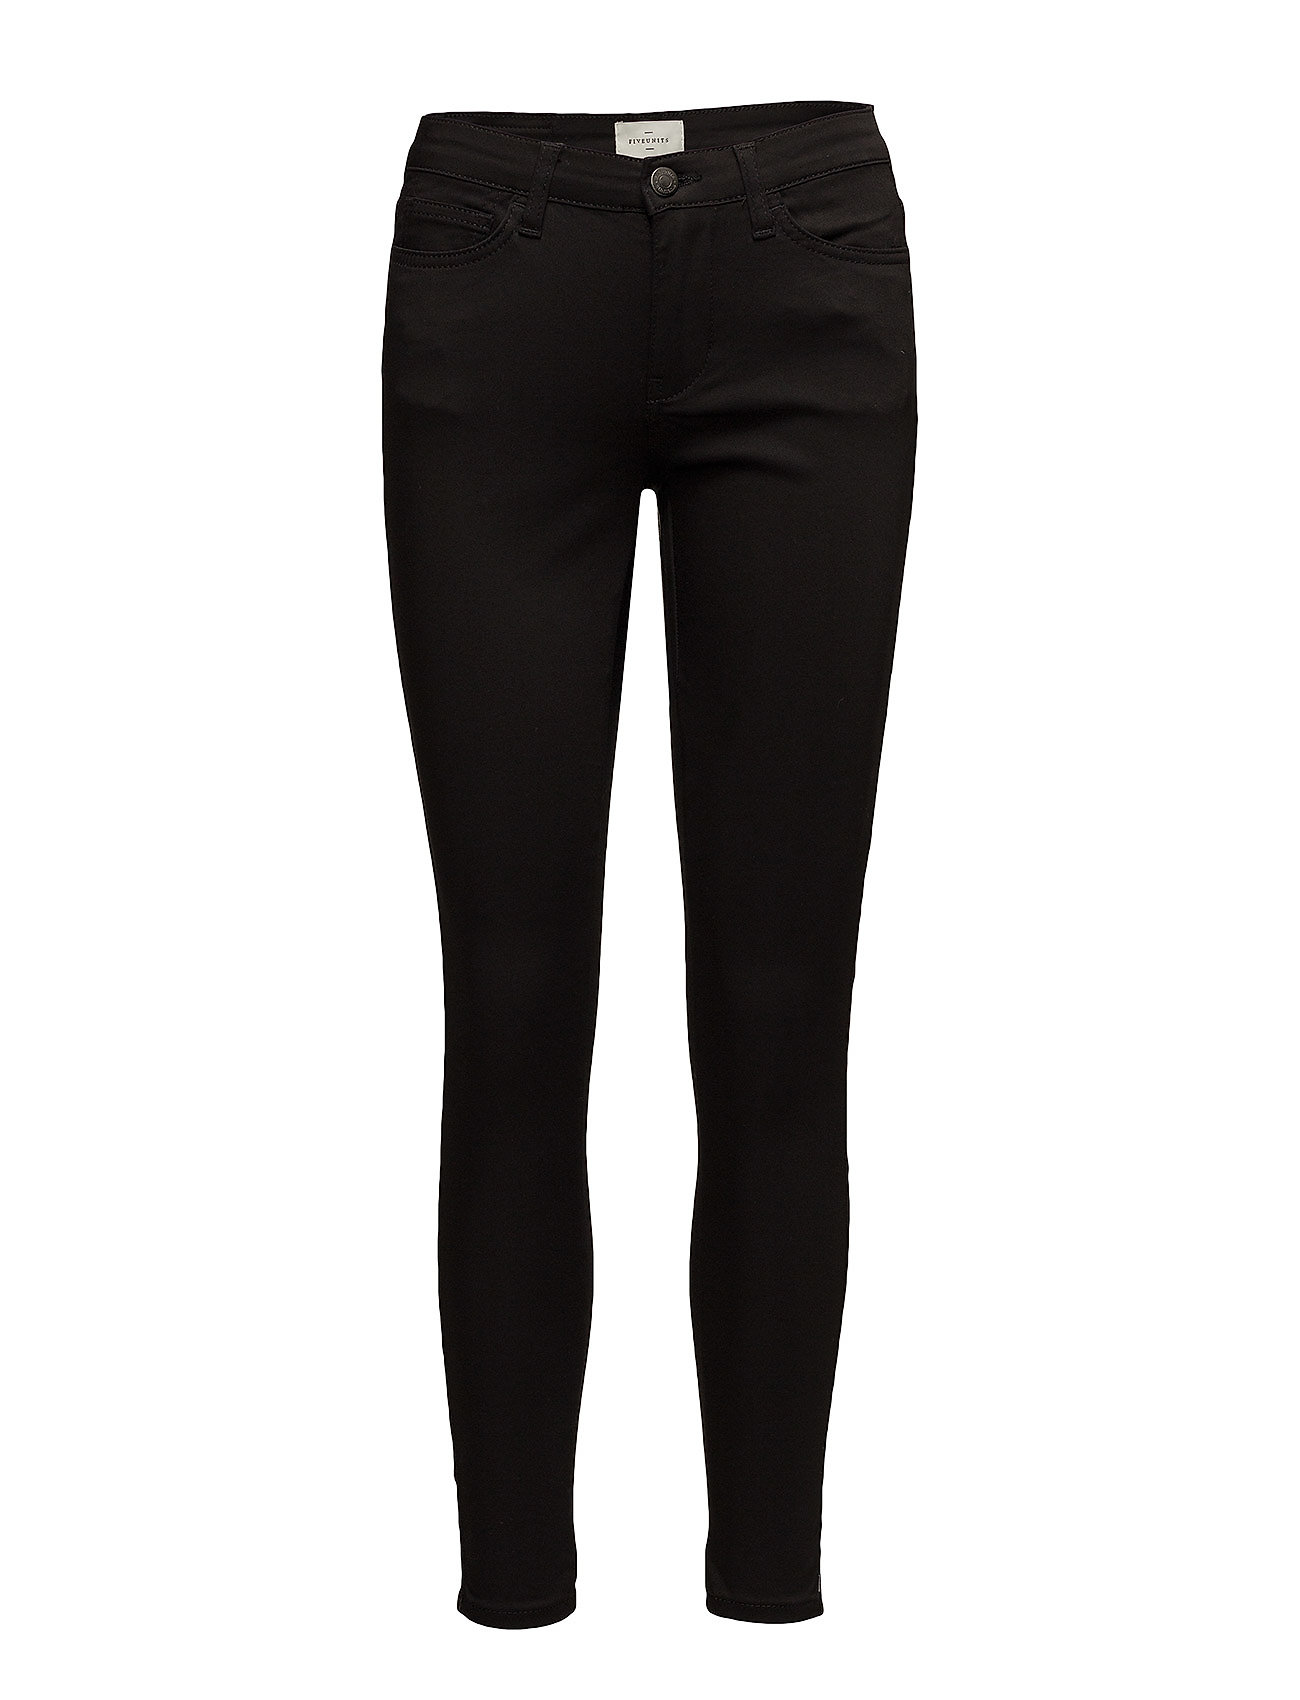 FIVEUNITS Kate 606 Gun Black, Pants - GUN BLACK